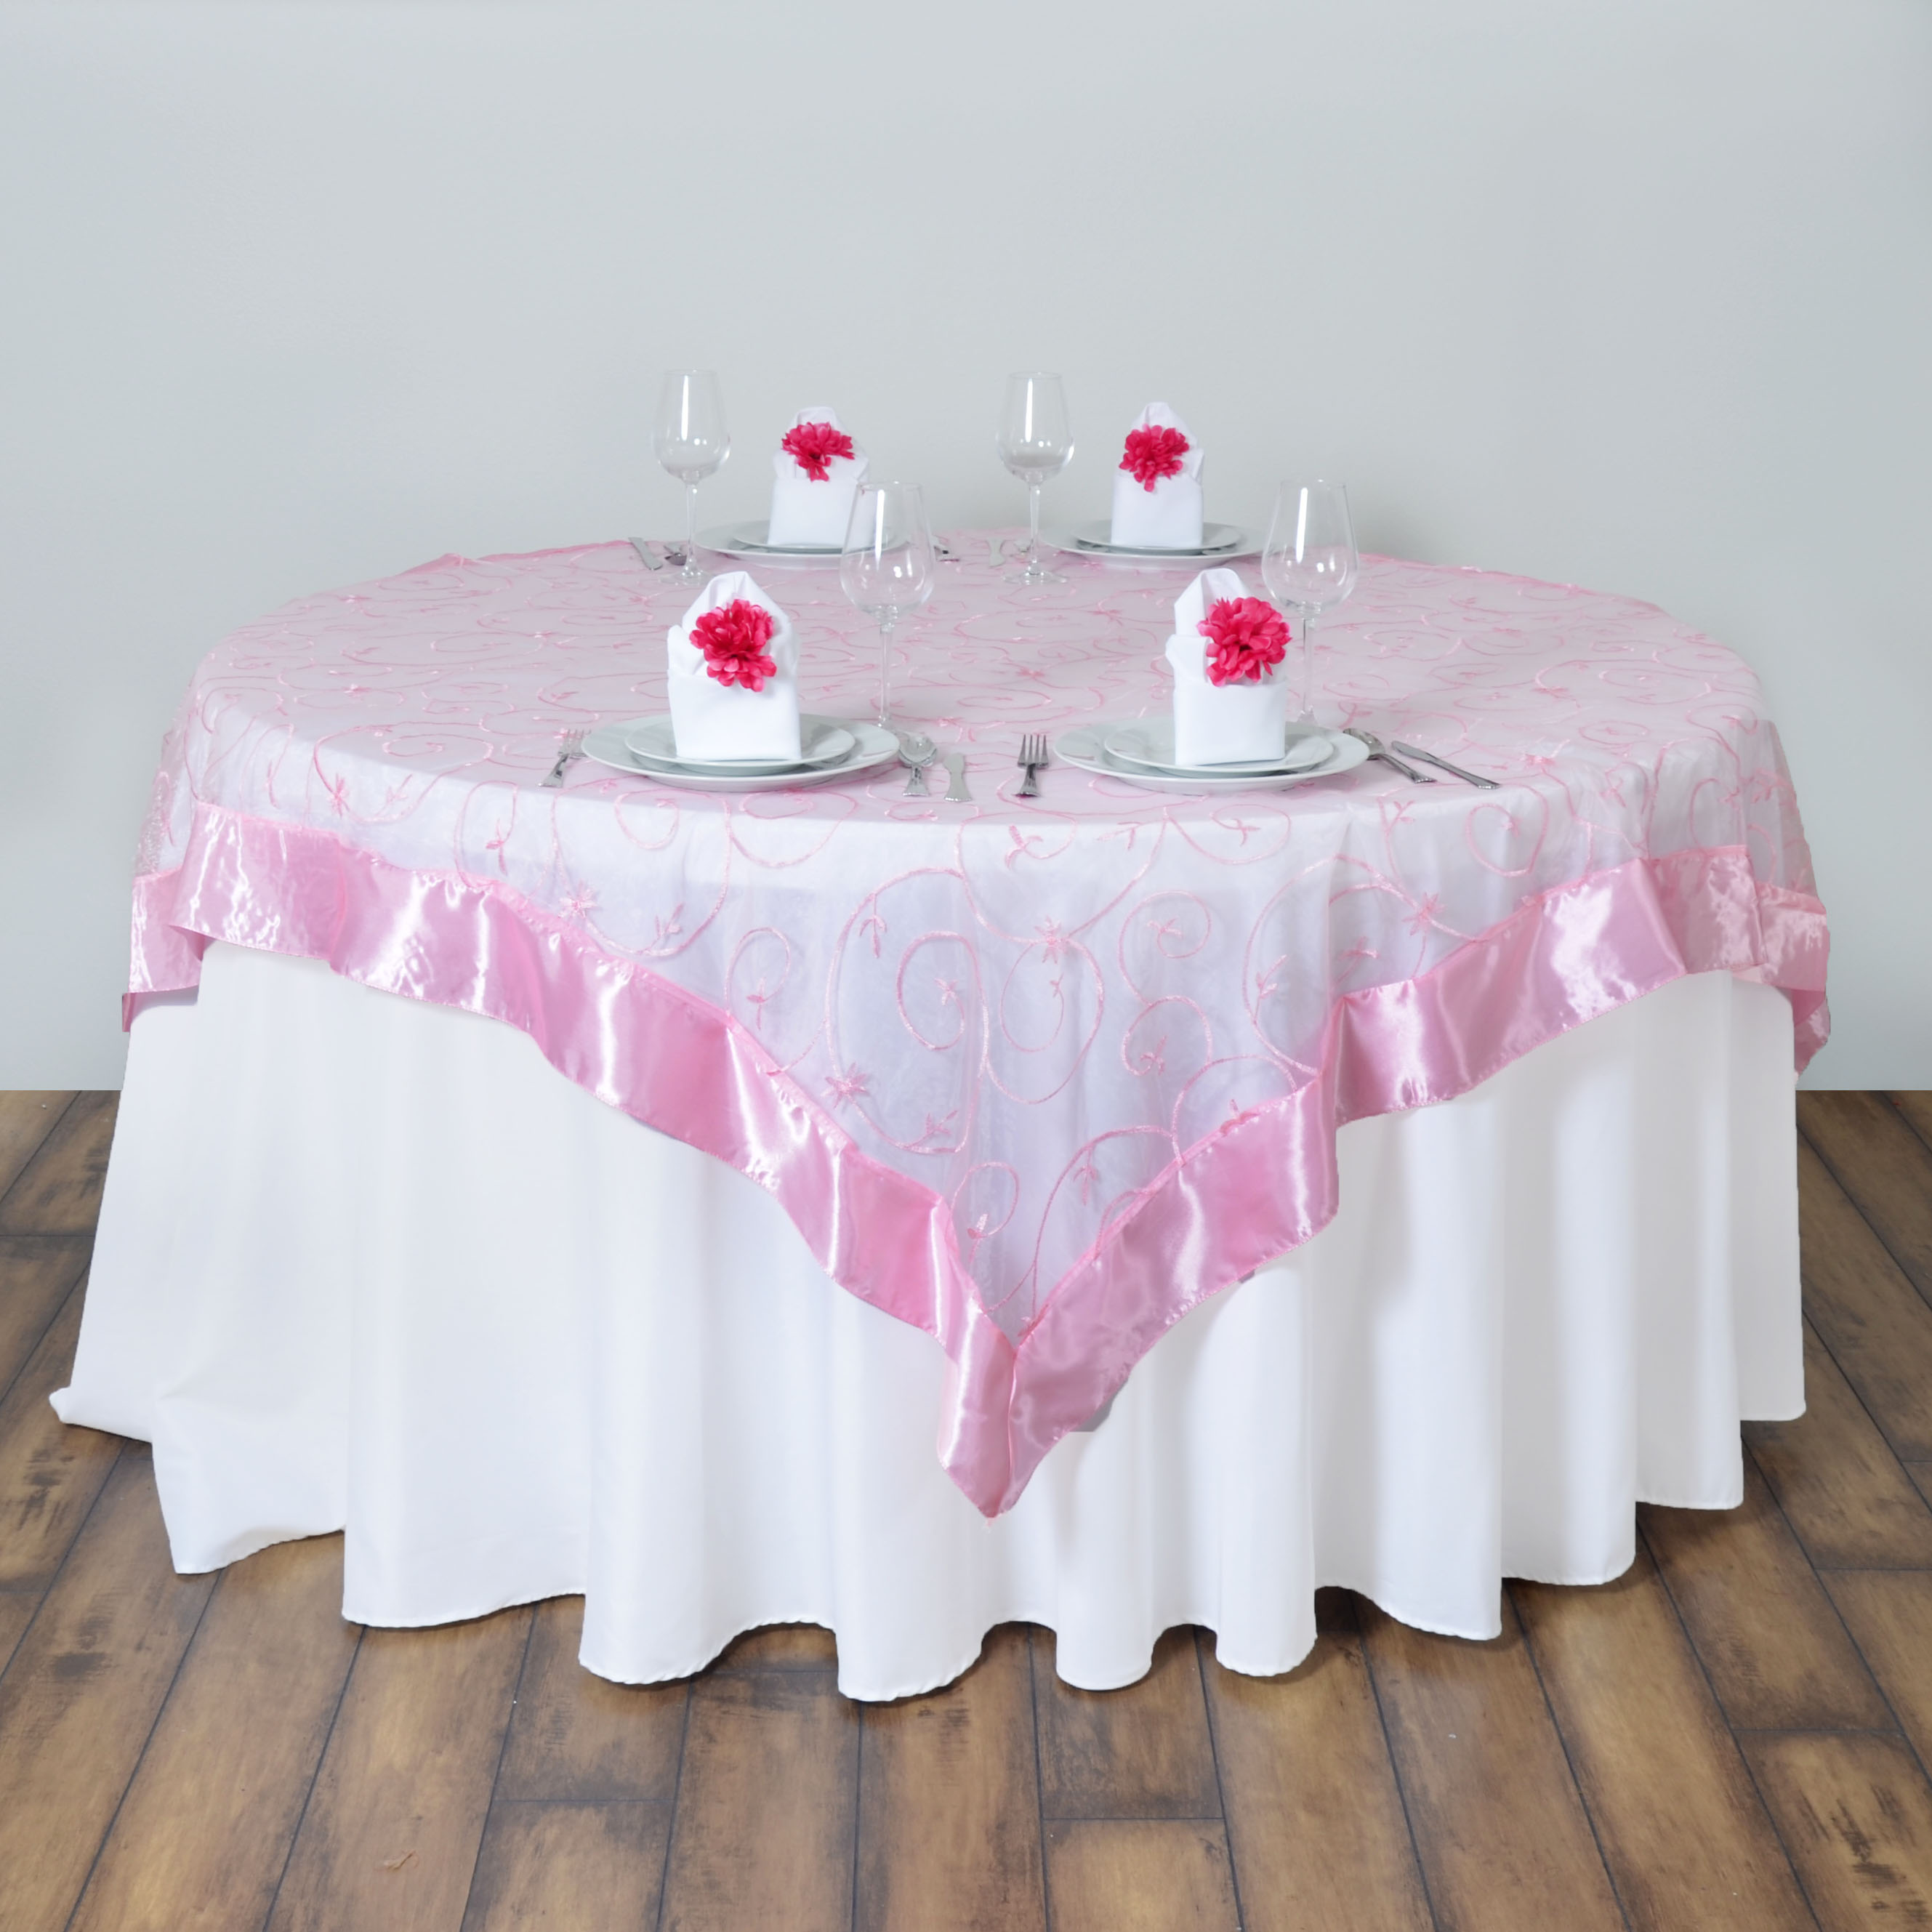 10 Pcs 85x85 034 Embroidered Sheer Organza Table